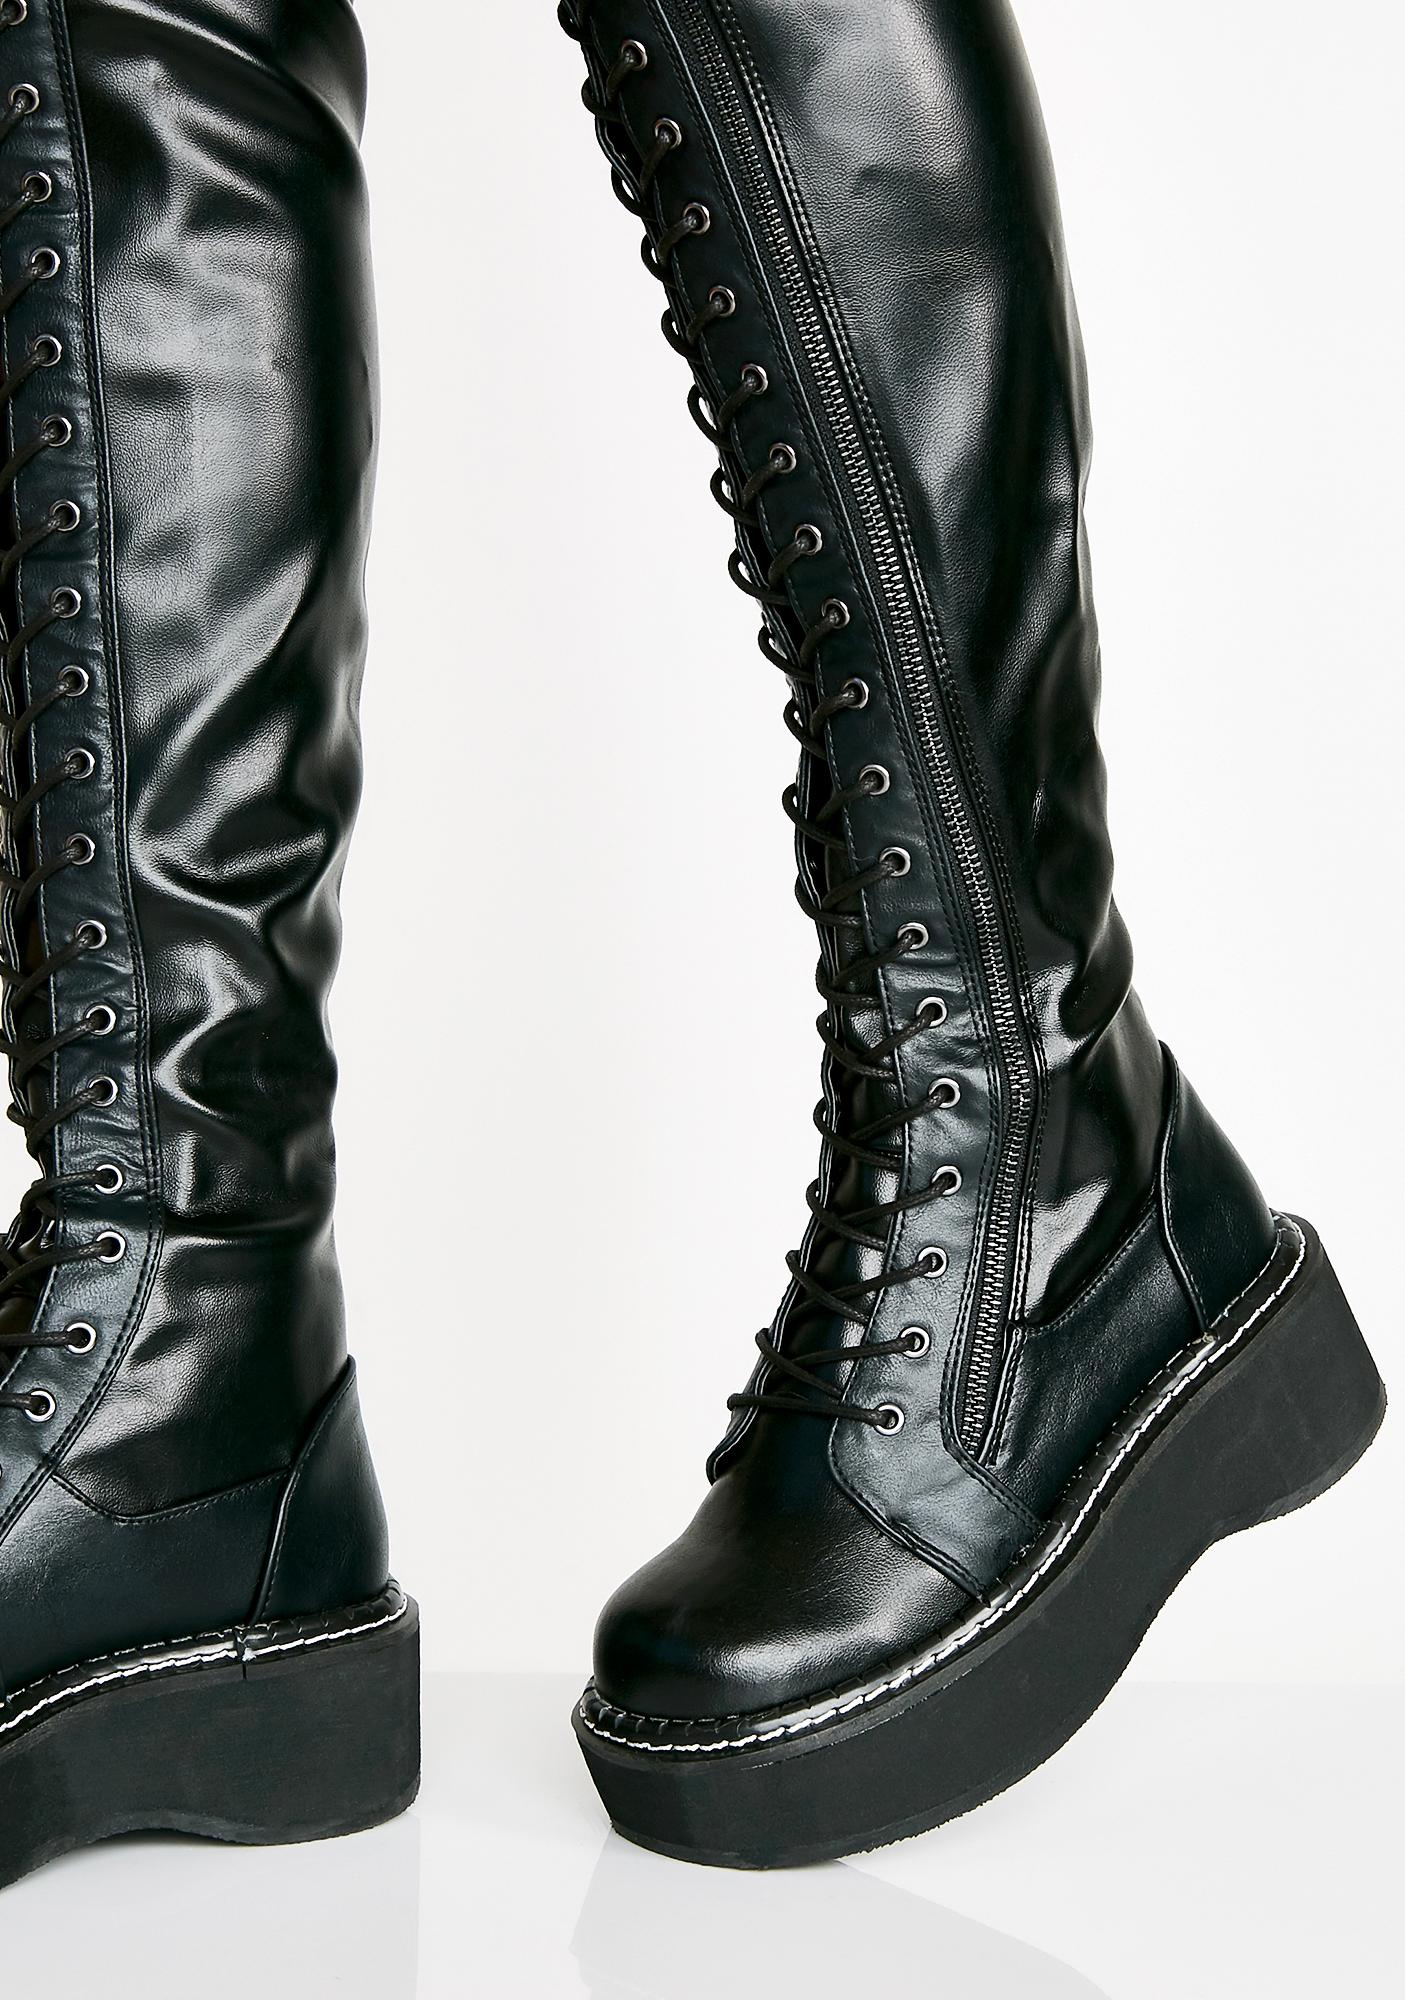 Demonia Hellraiser Lace-Up Boots